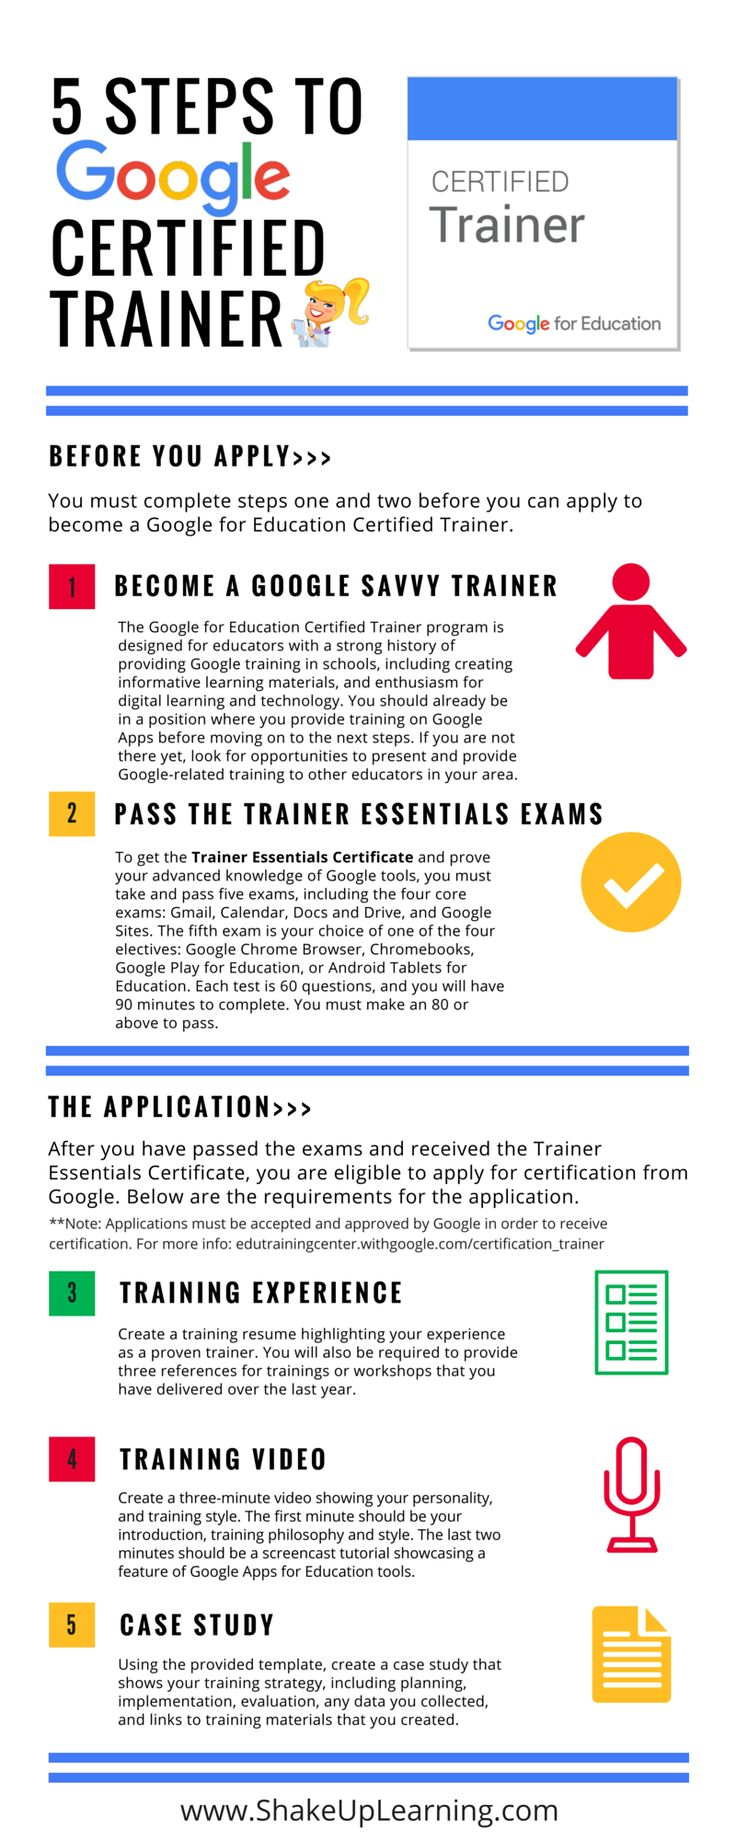 How to Become a Google Certified Trainer - 5 Steps [infographic] - Google Certification